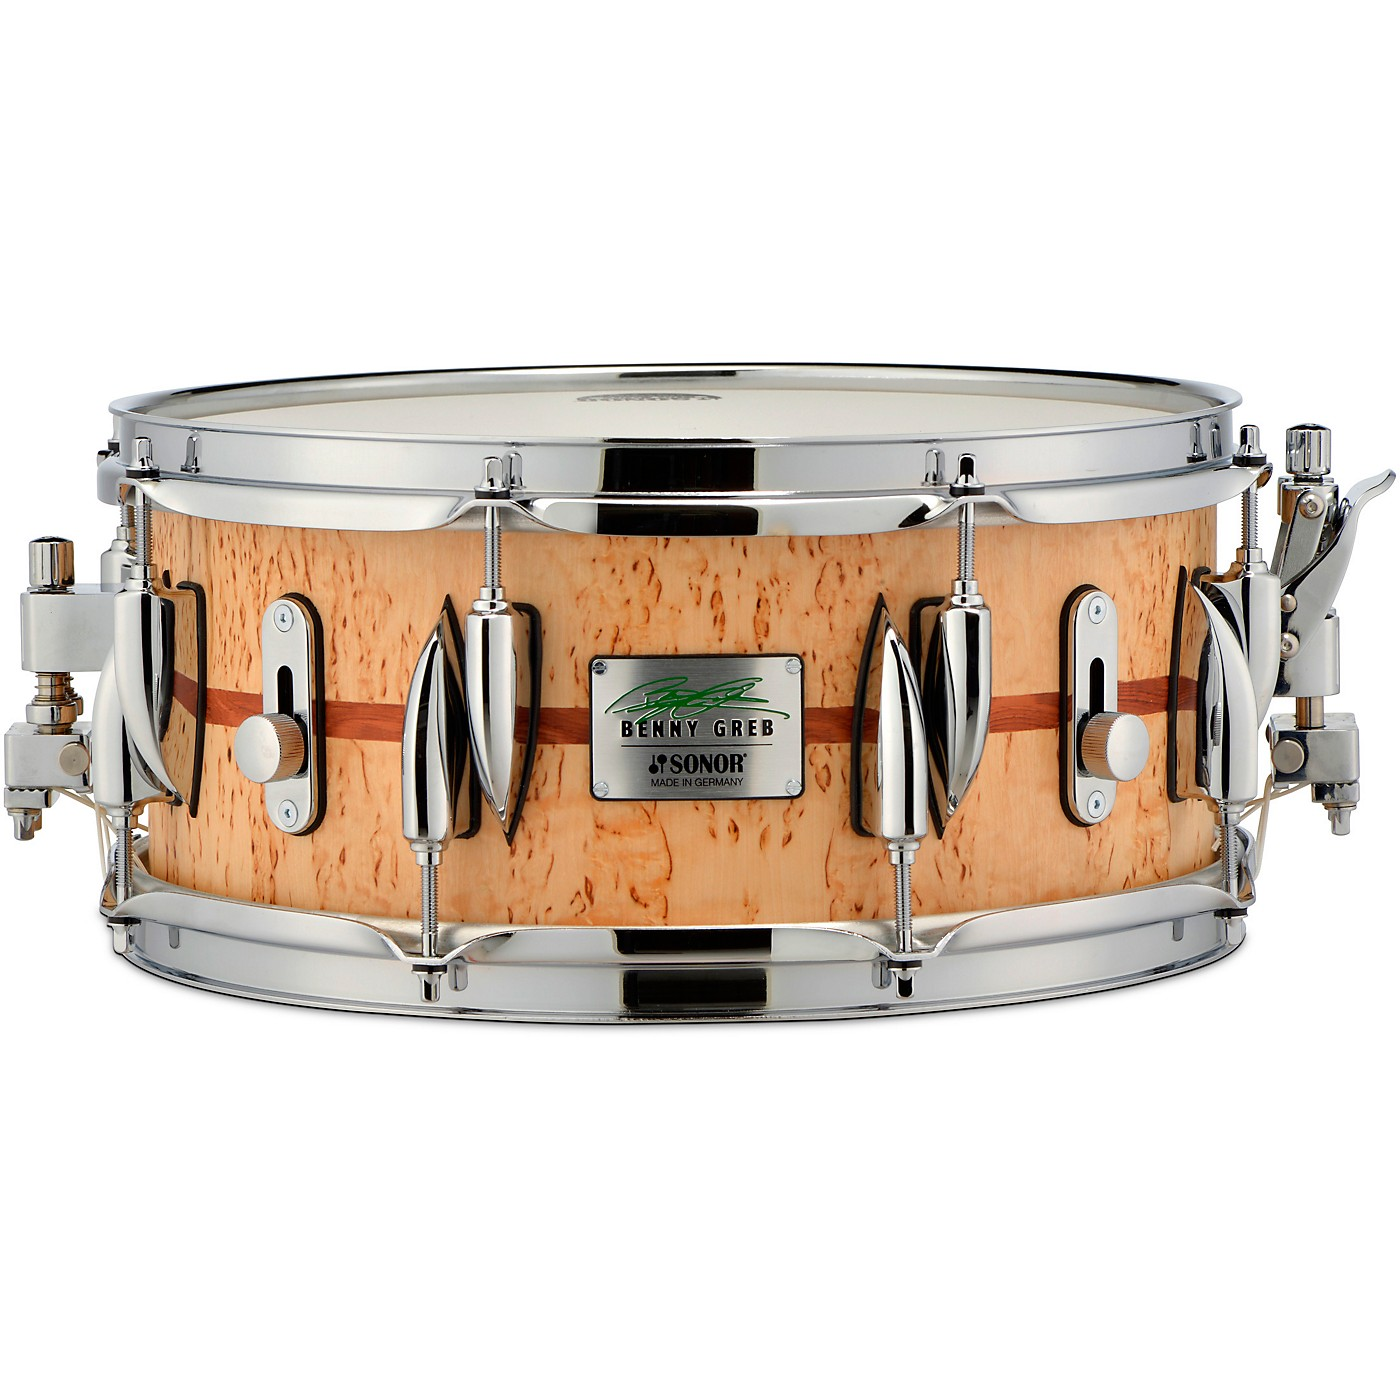 SONOR Benny Greb Signature Snare Drum thumbnail